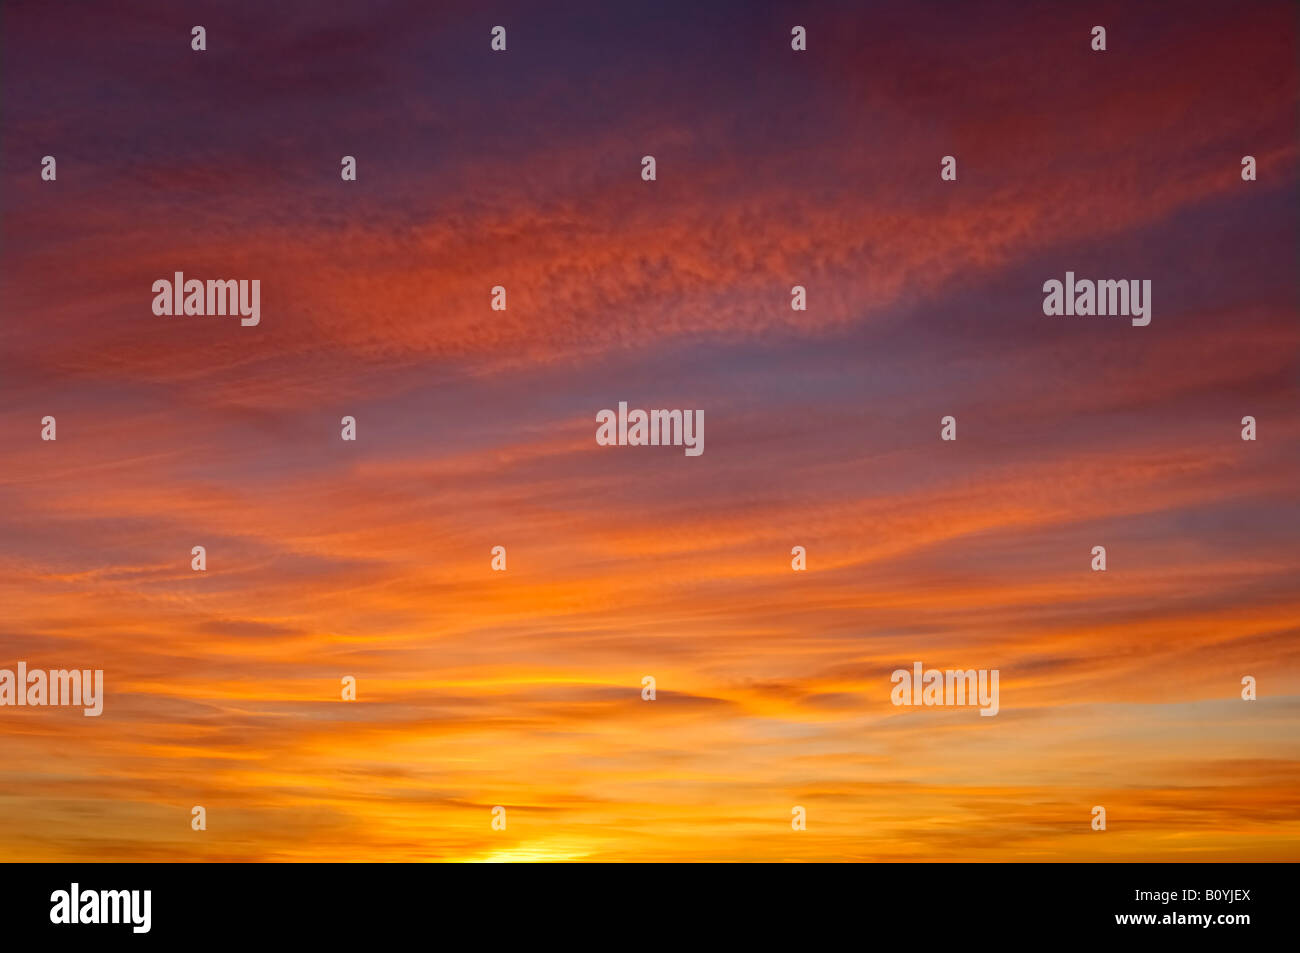 Germany, Immenstaad, Evening sky with afterglow - Stock Image